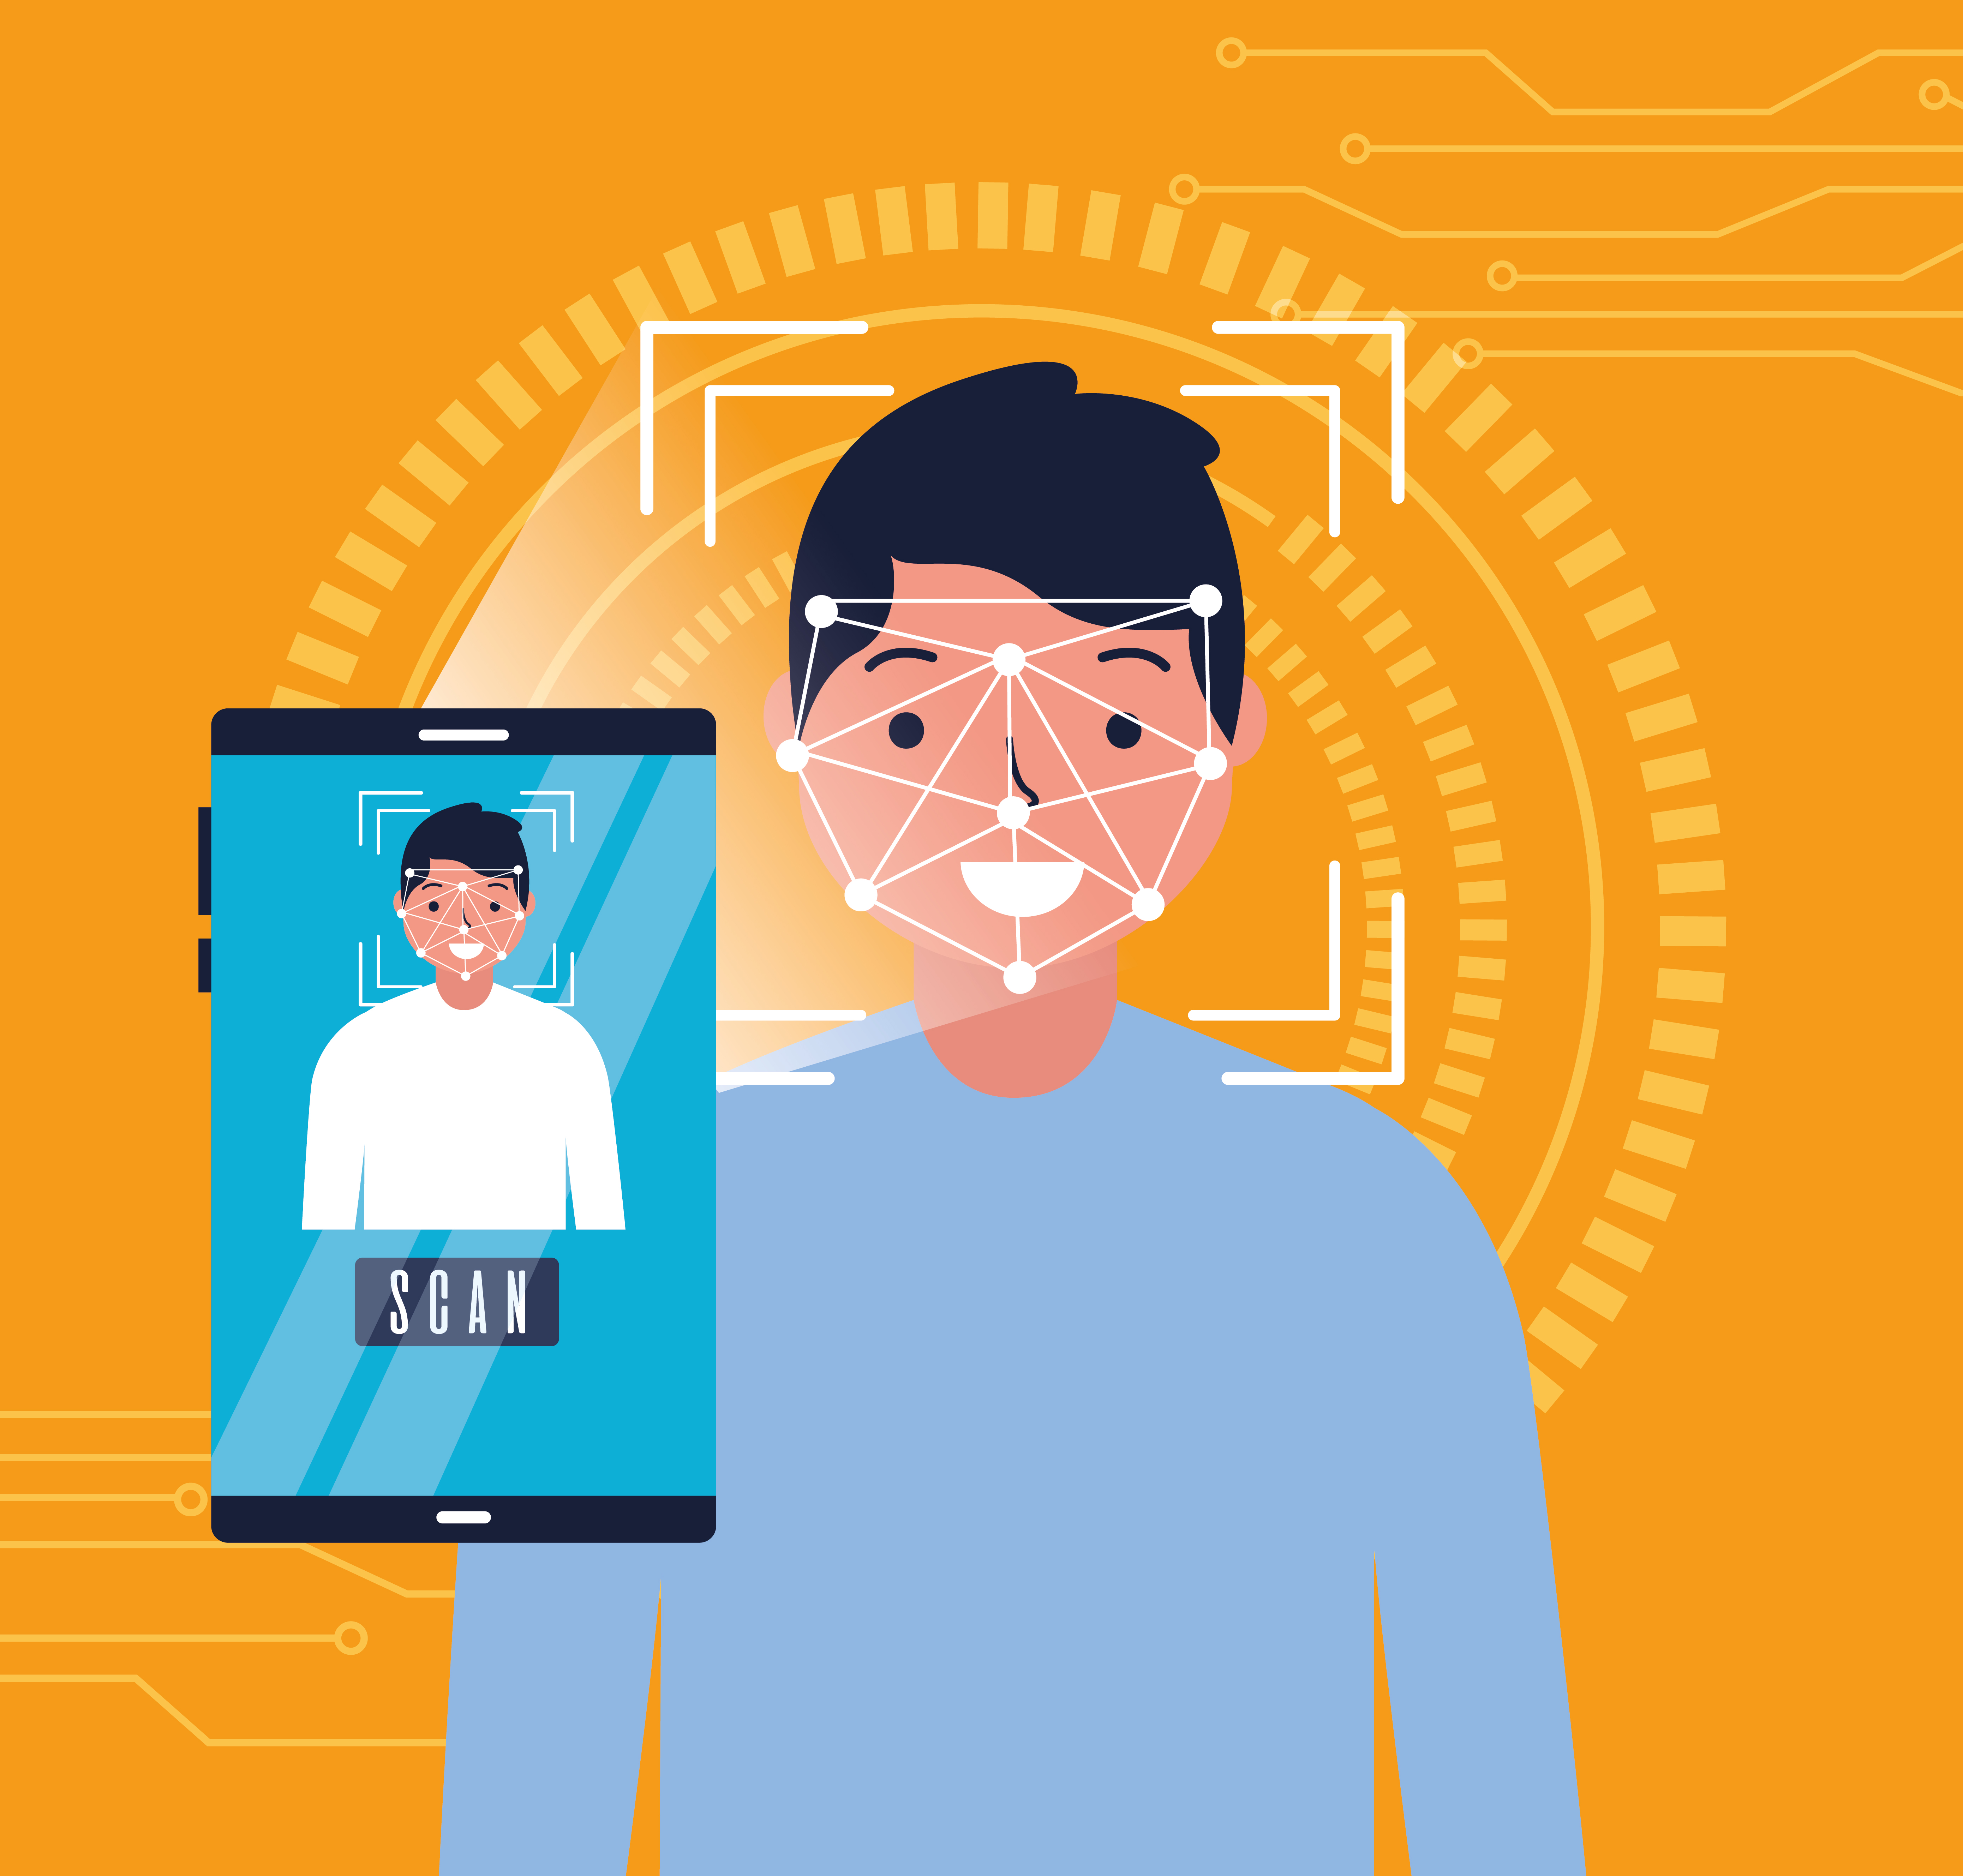 the visual shows face recognition feature as one of home health software benefits